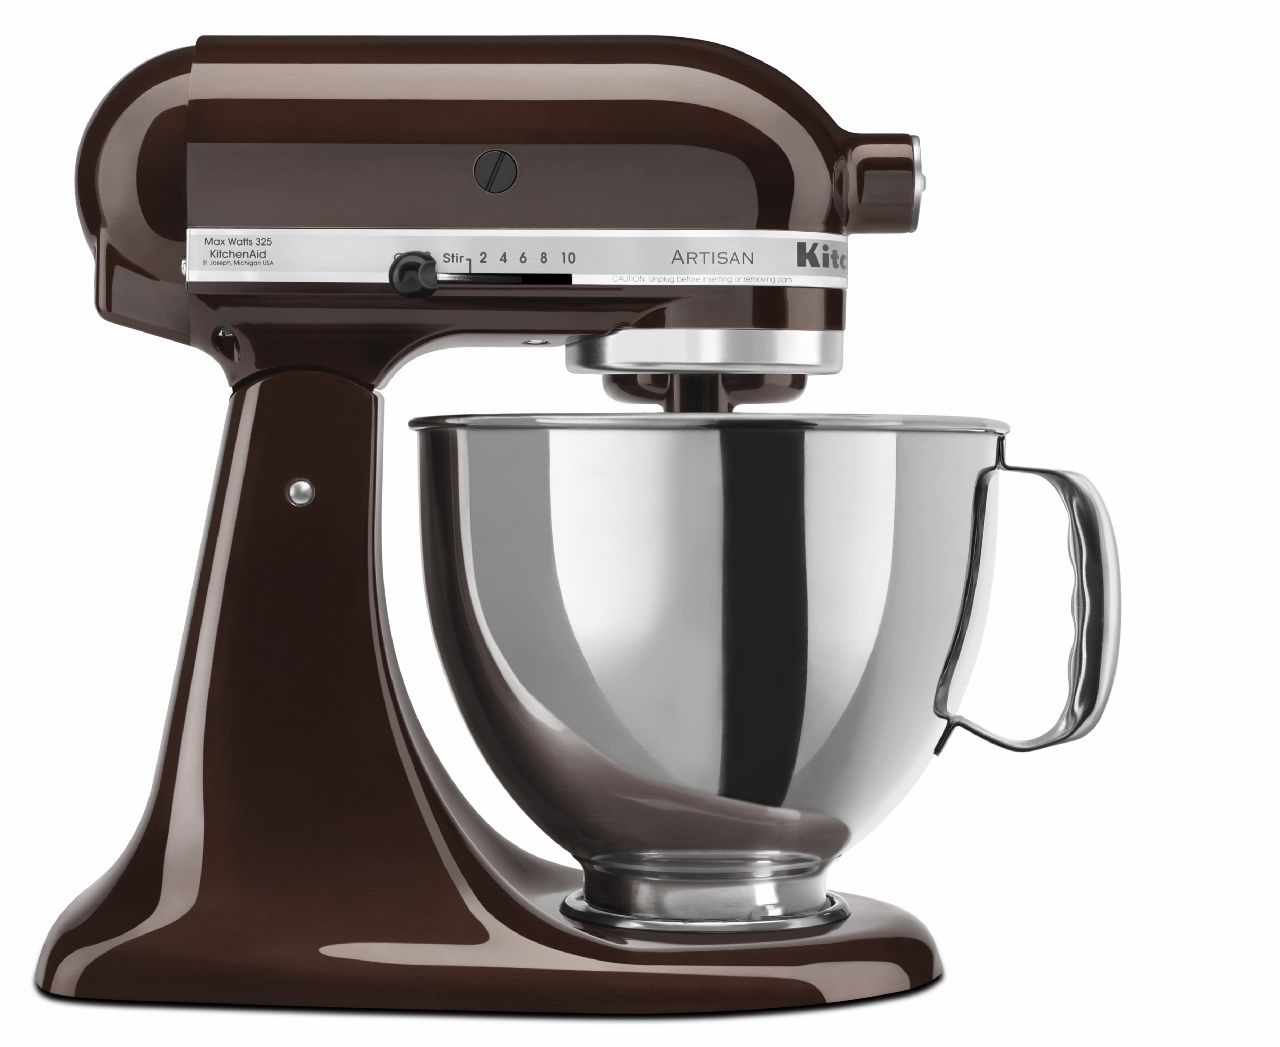 kitchenaid artisan series 5 qt tilt head stand mixer. Black Bedroom Furniture Sets. Home Design Ideas